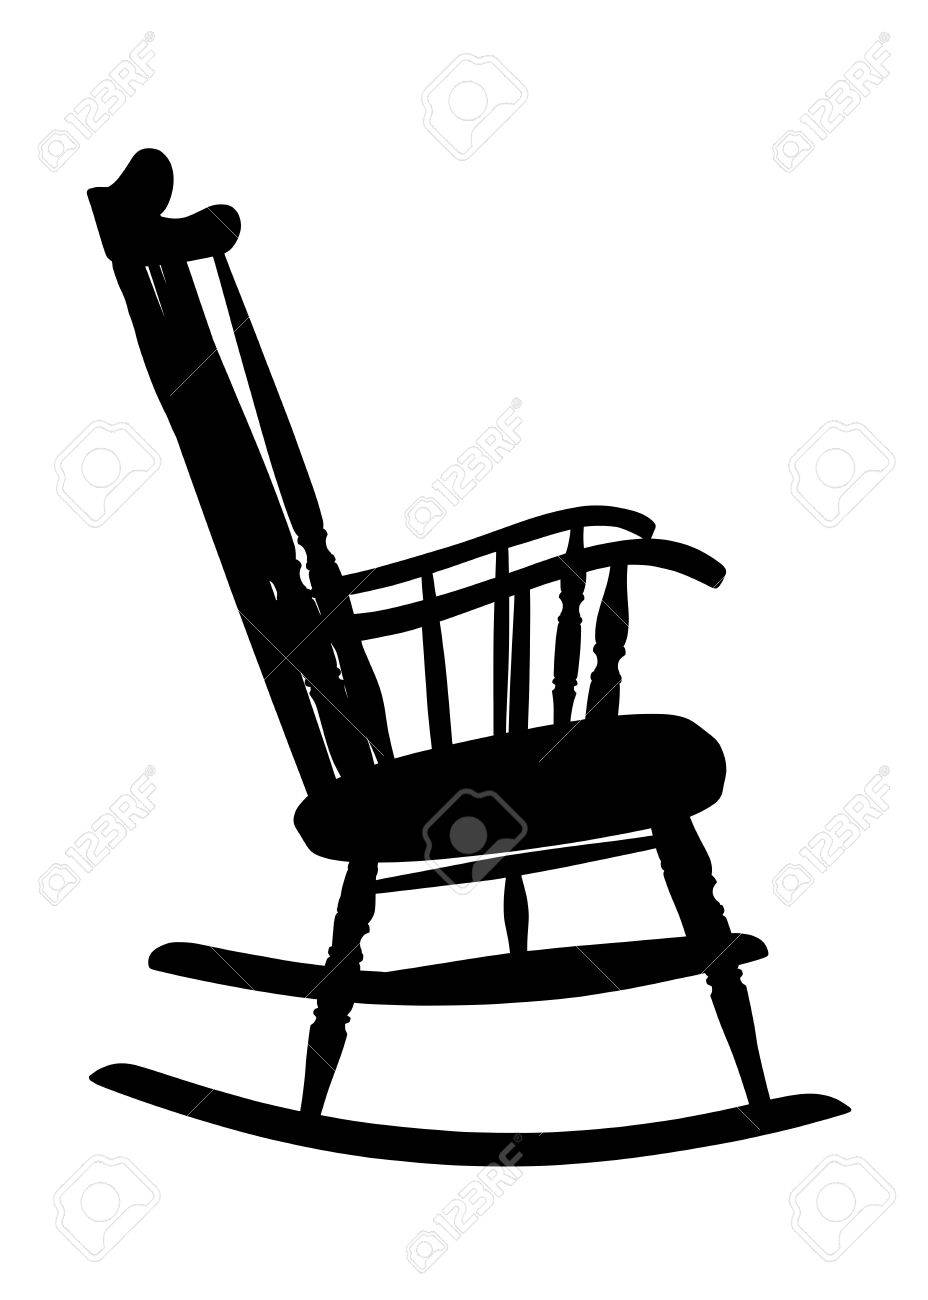 Rocking Chair Clipart vintage rocking chair stencil - right side royalty free cliparts